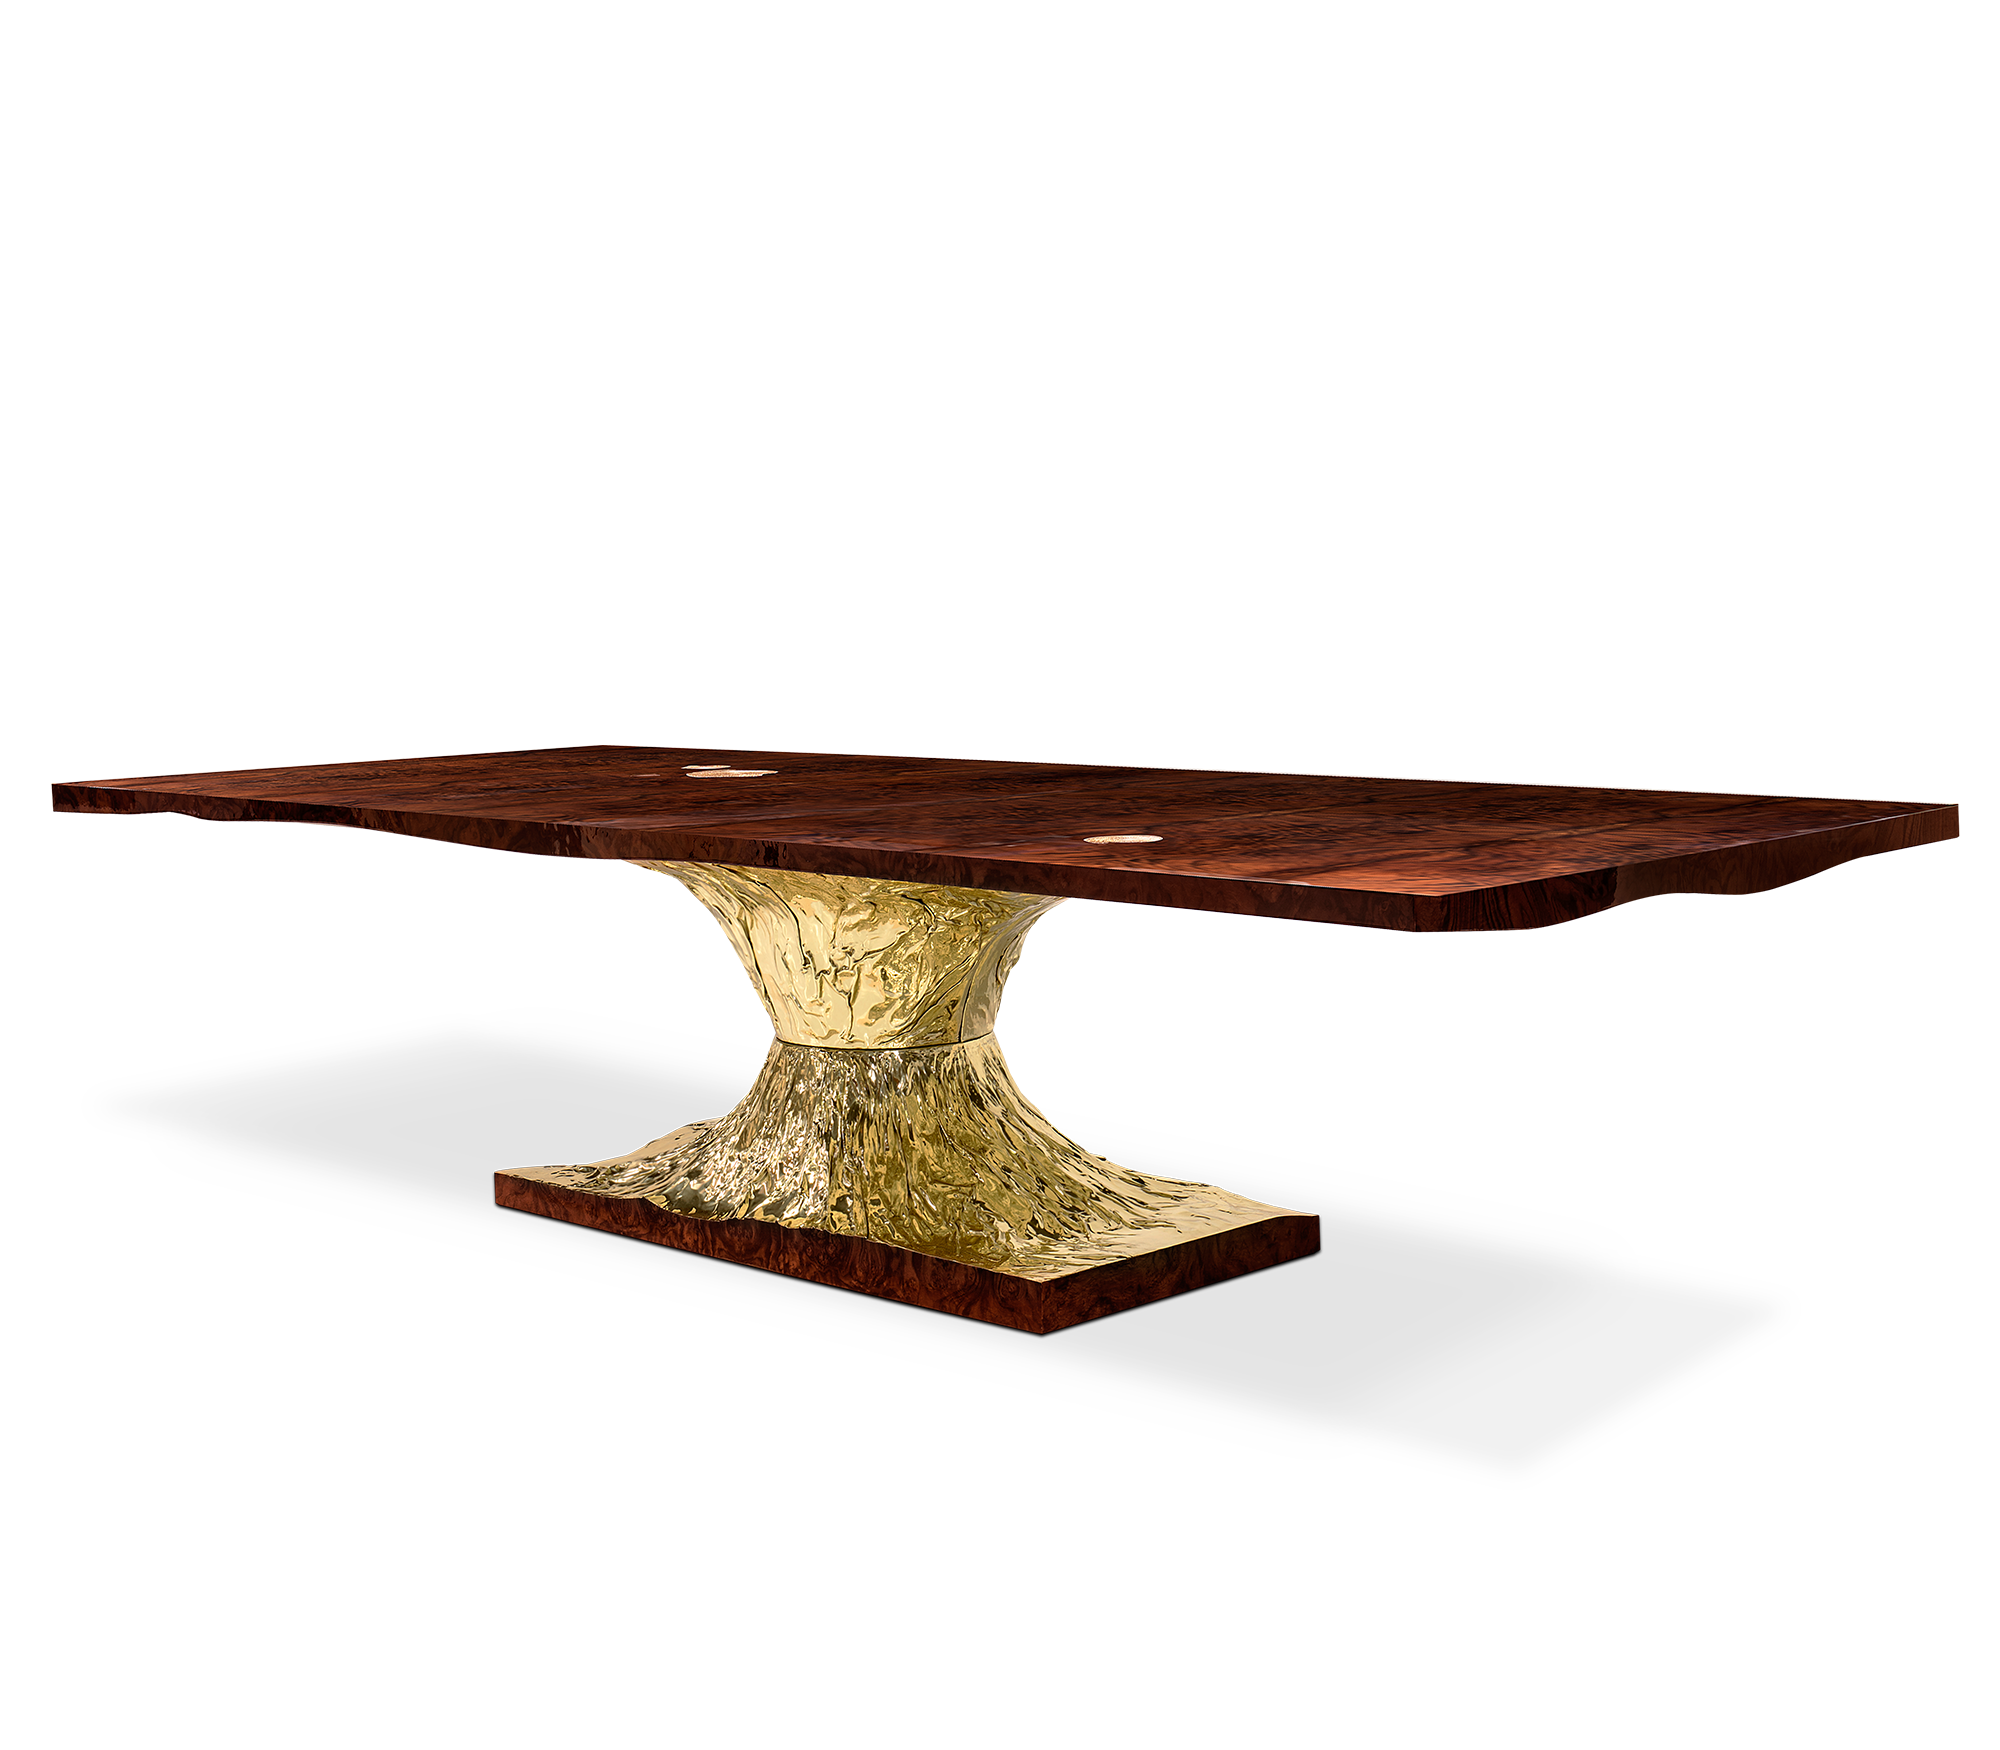 metamorphosis dining table by Boca do Lobo